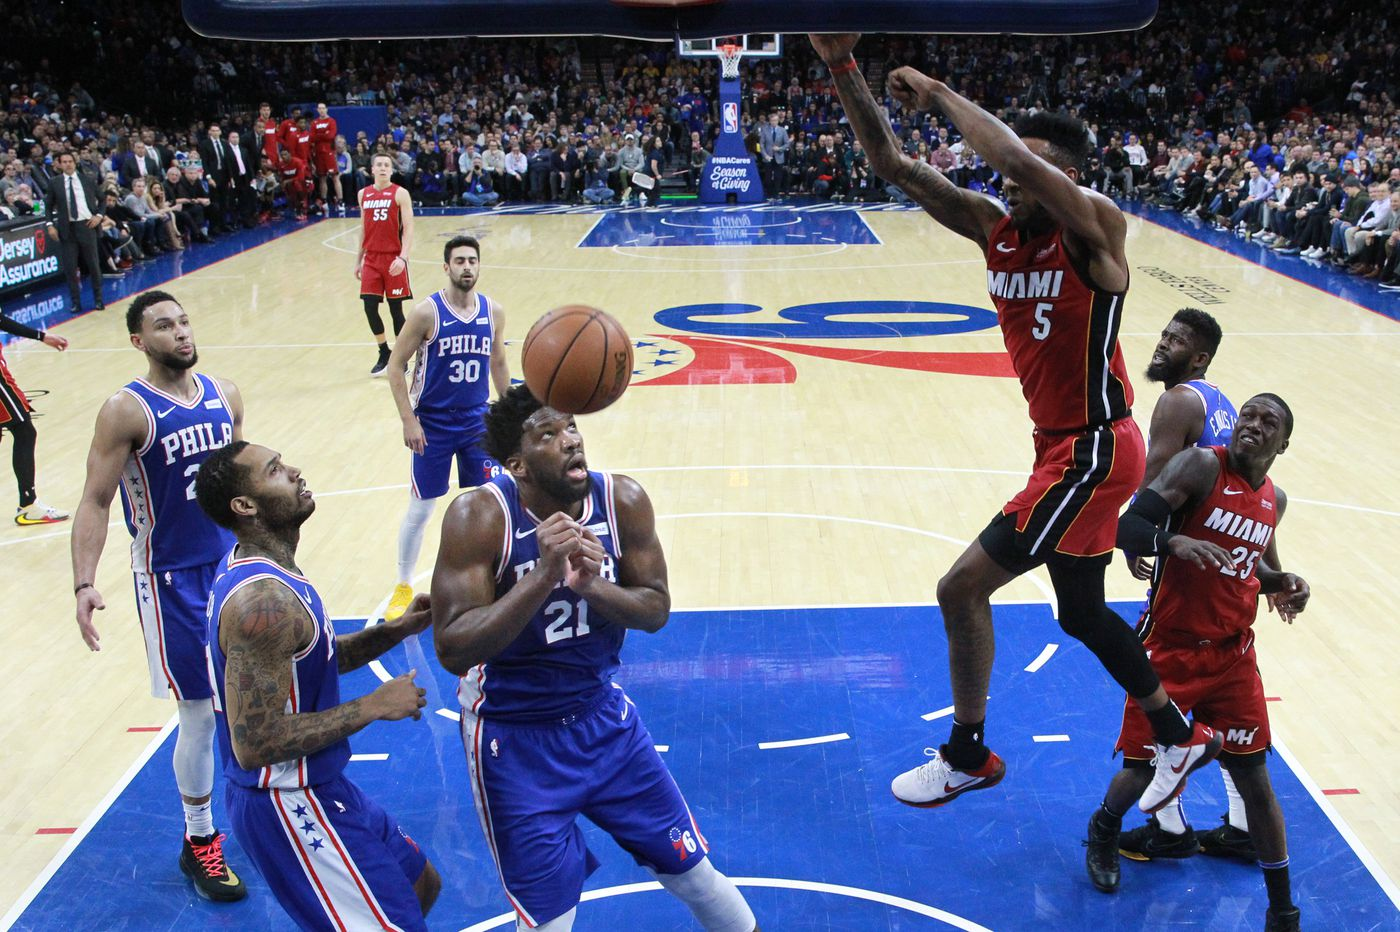 Jimmy Butler and Heat hand Sixers first home loss of season